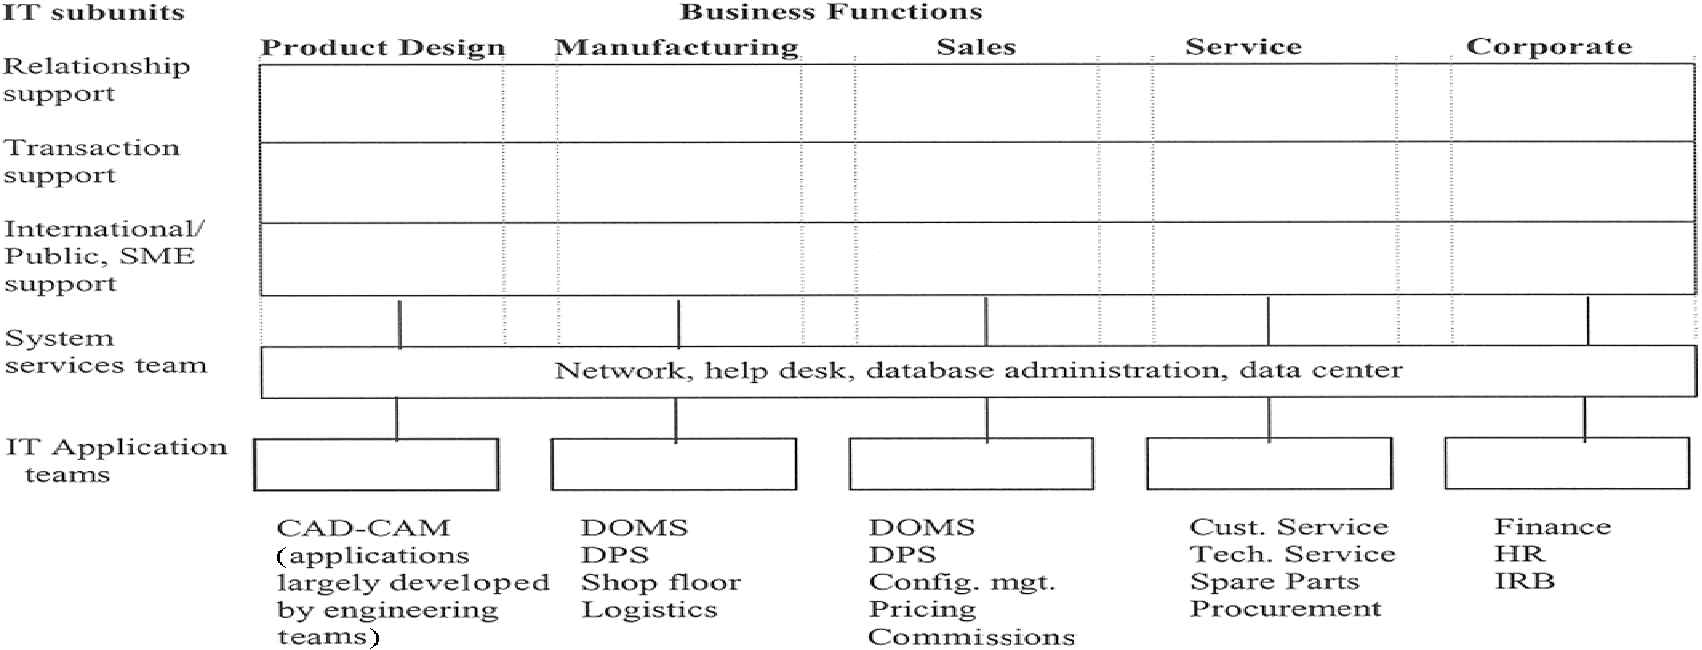 16 K. L. KRAEMER ET AL. FIG. 4. Matrix structure of Dell Americas IT organization. businesses), and international/public (non-u.s. markets; government, education, small- and medium-sized enterprise (SME)).